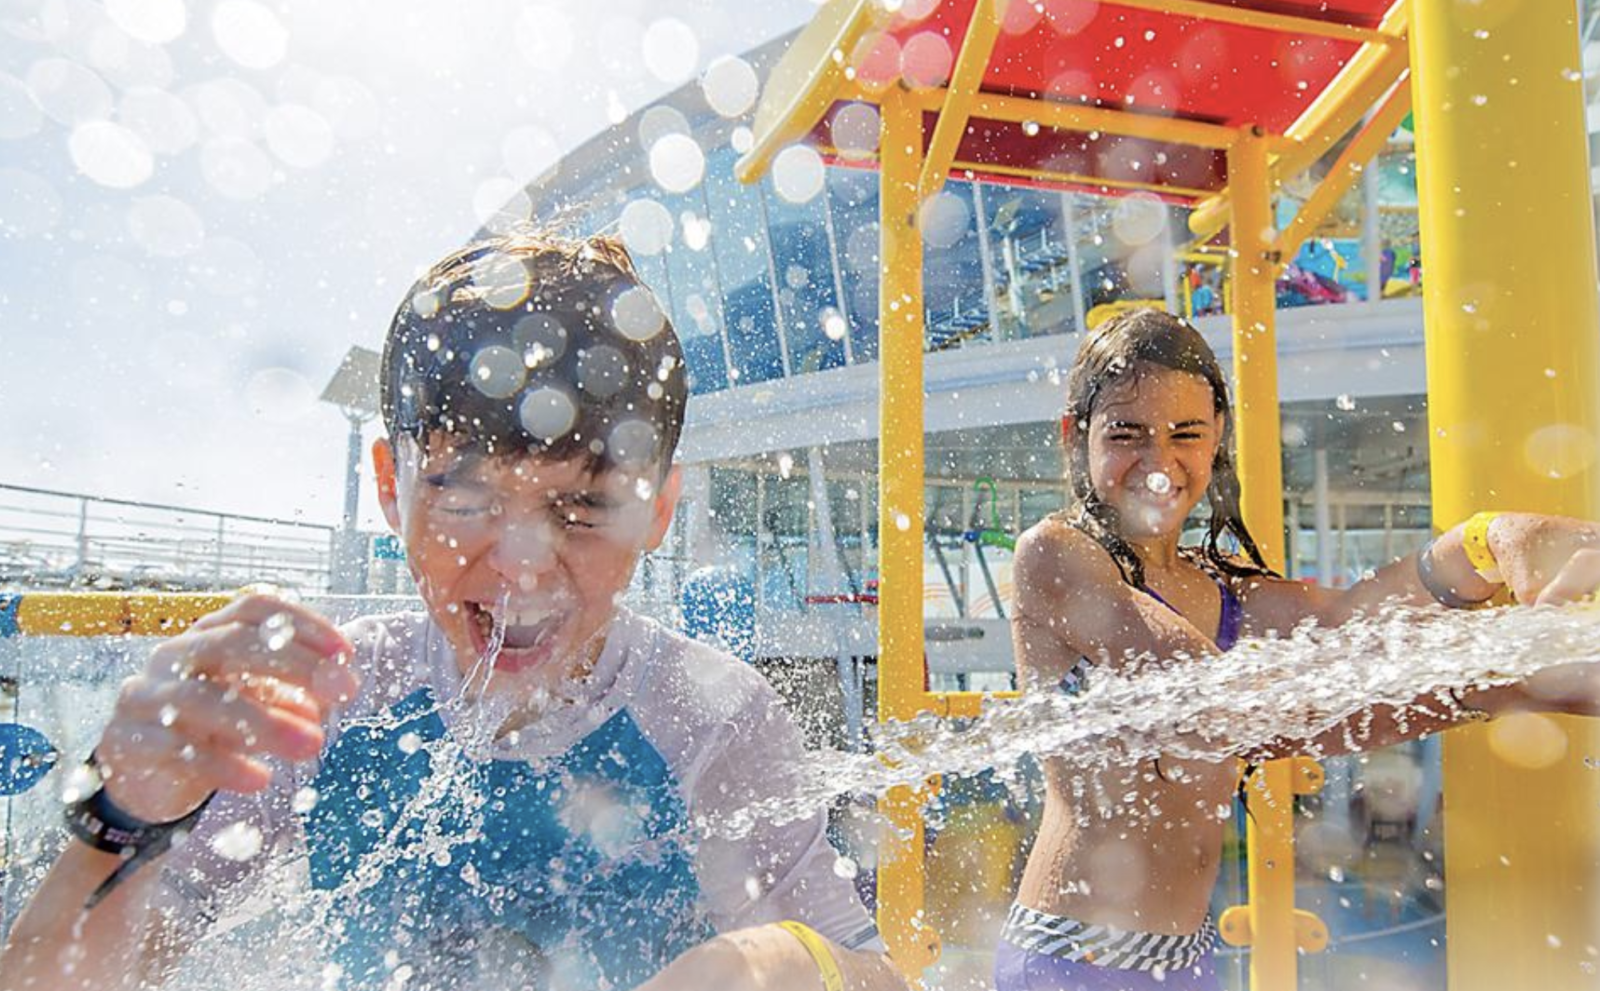 Splashaway Bay is one of the best cruise ship water parks for kids (Photo: Royal Caribbean Cruise Line)